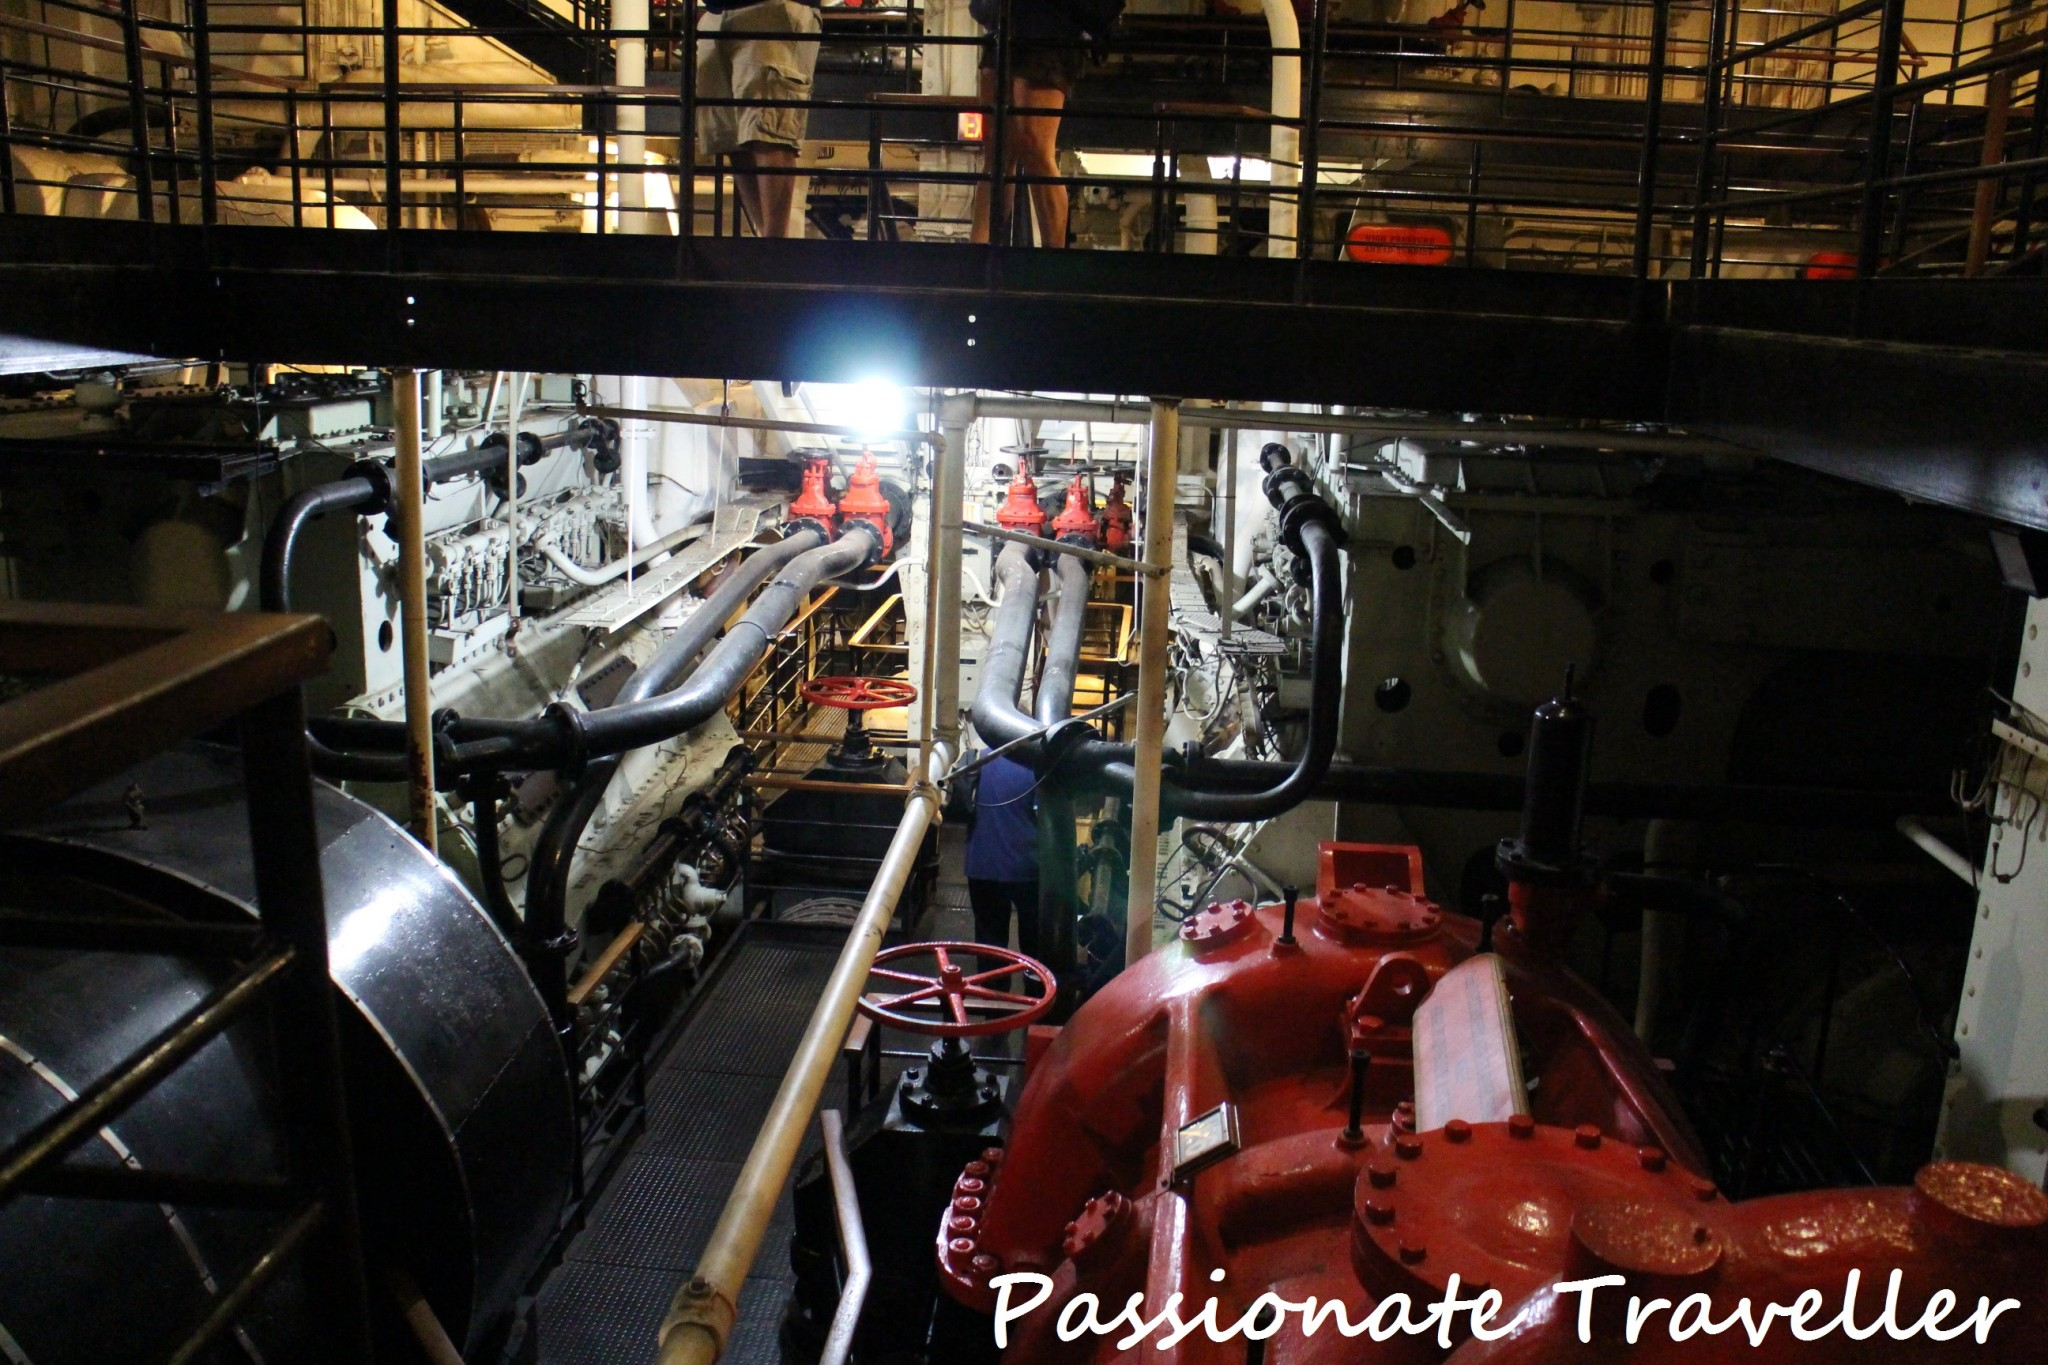 Queen Mary Engine Room 2